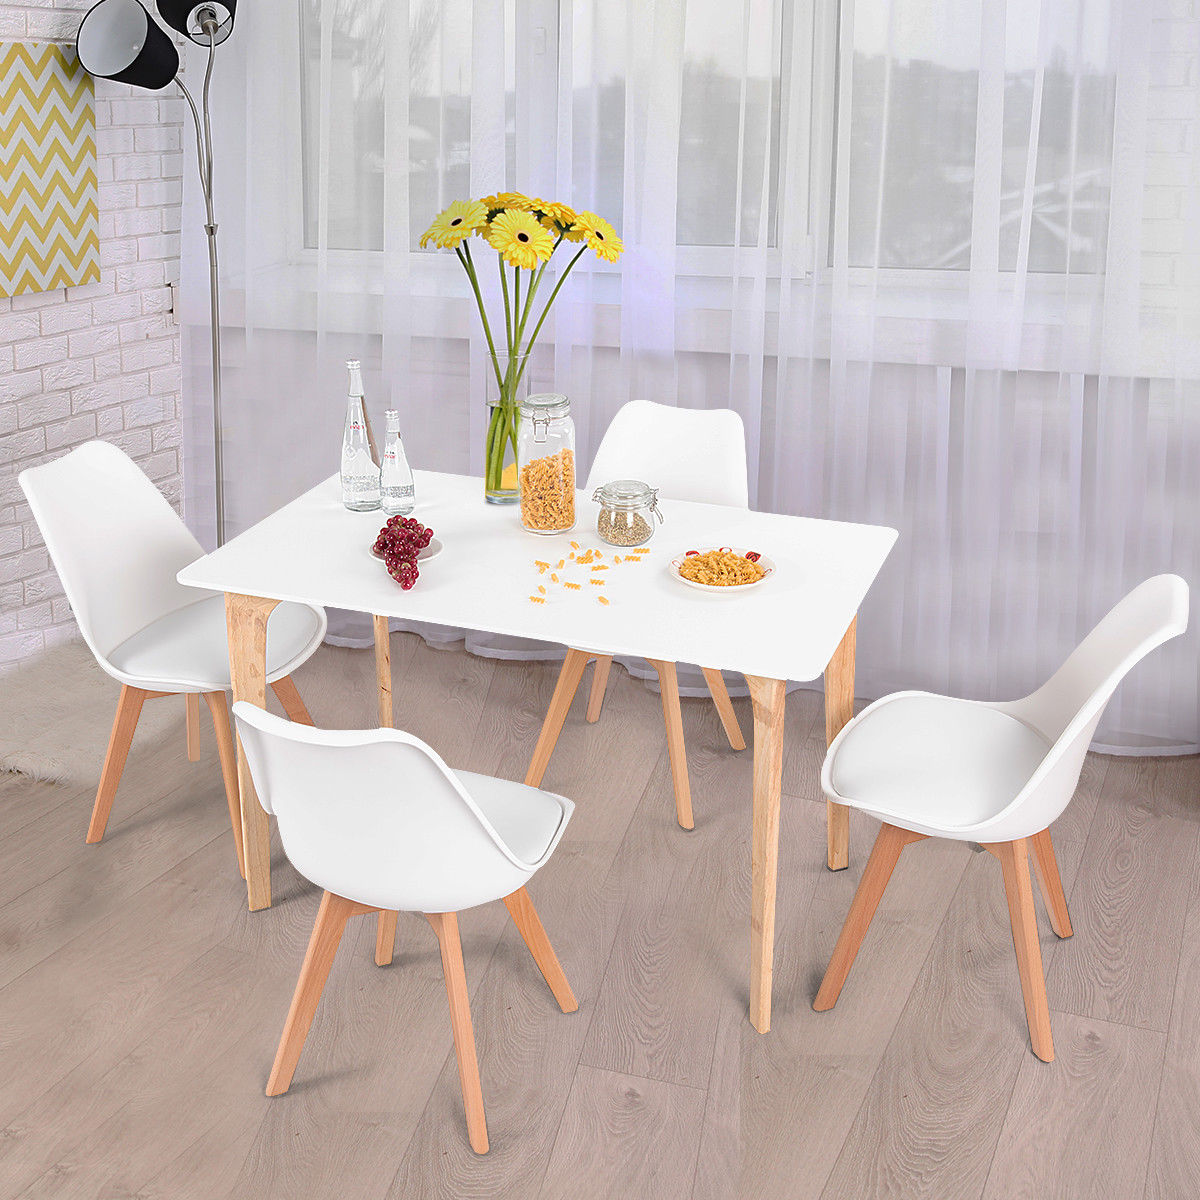 Costway 5 Piece Mid-Century Dining Room Set Rectangular Table and 4 Chairs Modern White by Costway